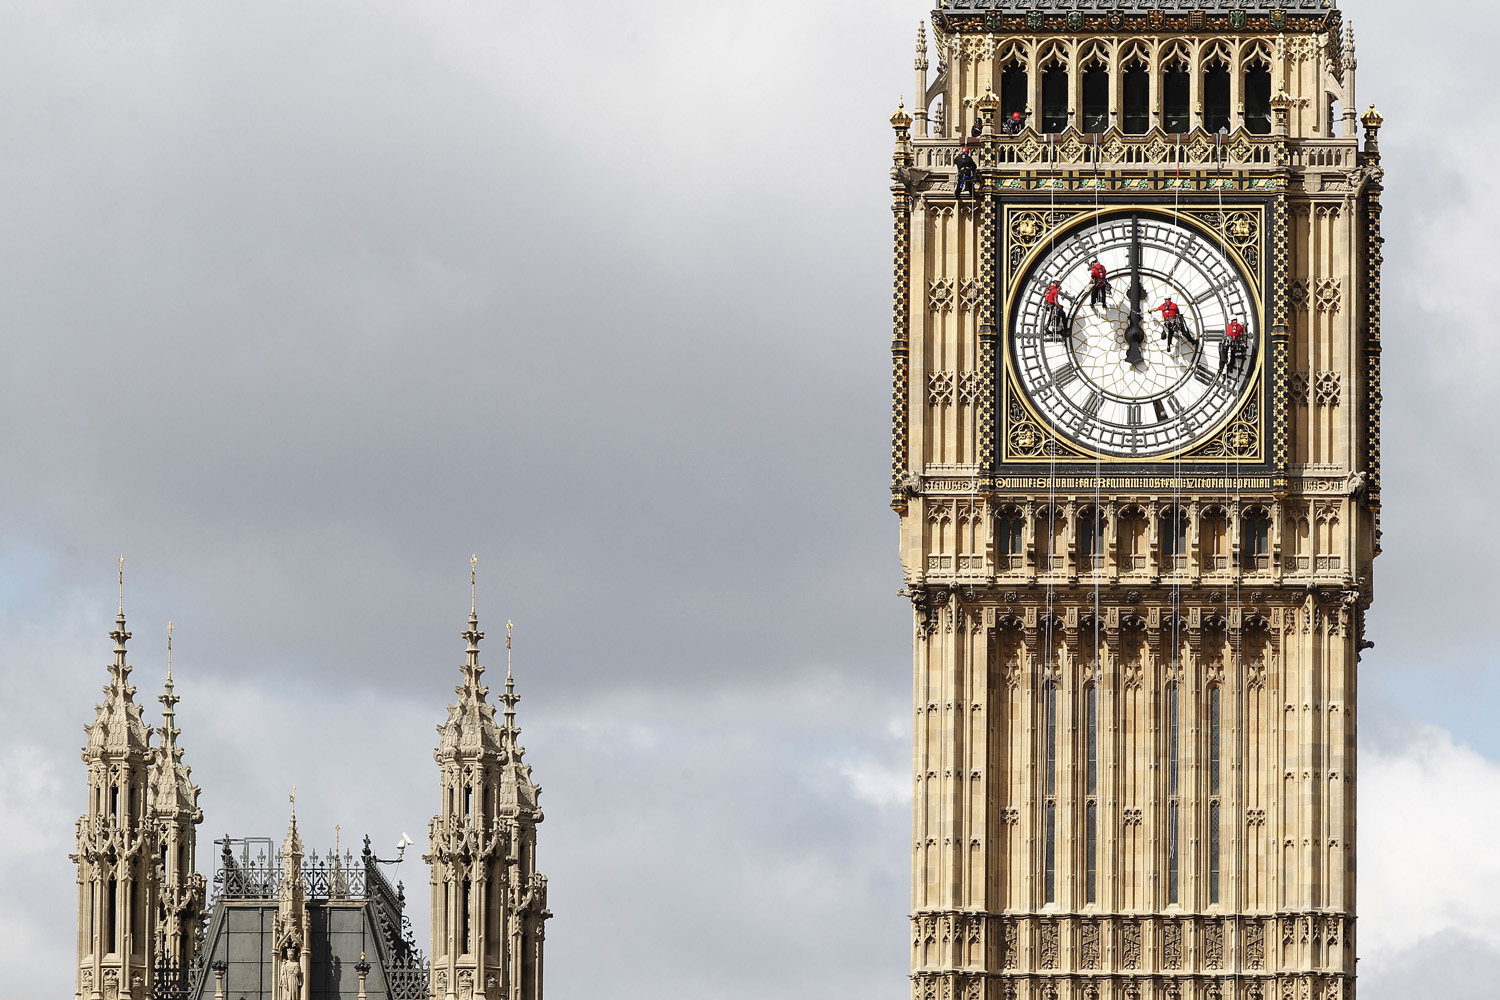 Aug. 19, 2014. A team of technical specialist clean and inspect one of the four faces of the Great Clock, otherwise known as Big Ben, at the Houses of Parliament, in central London.